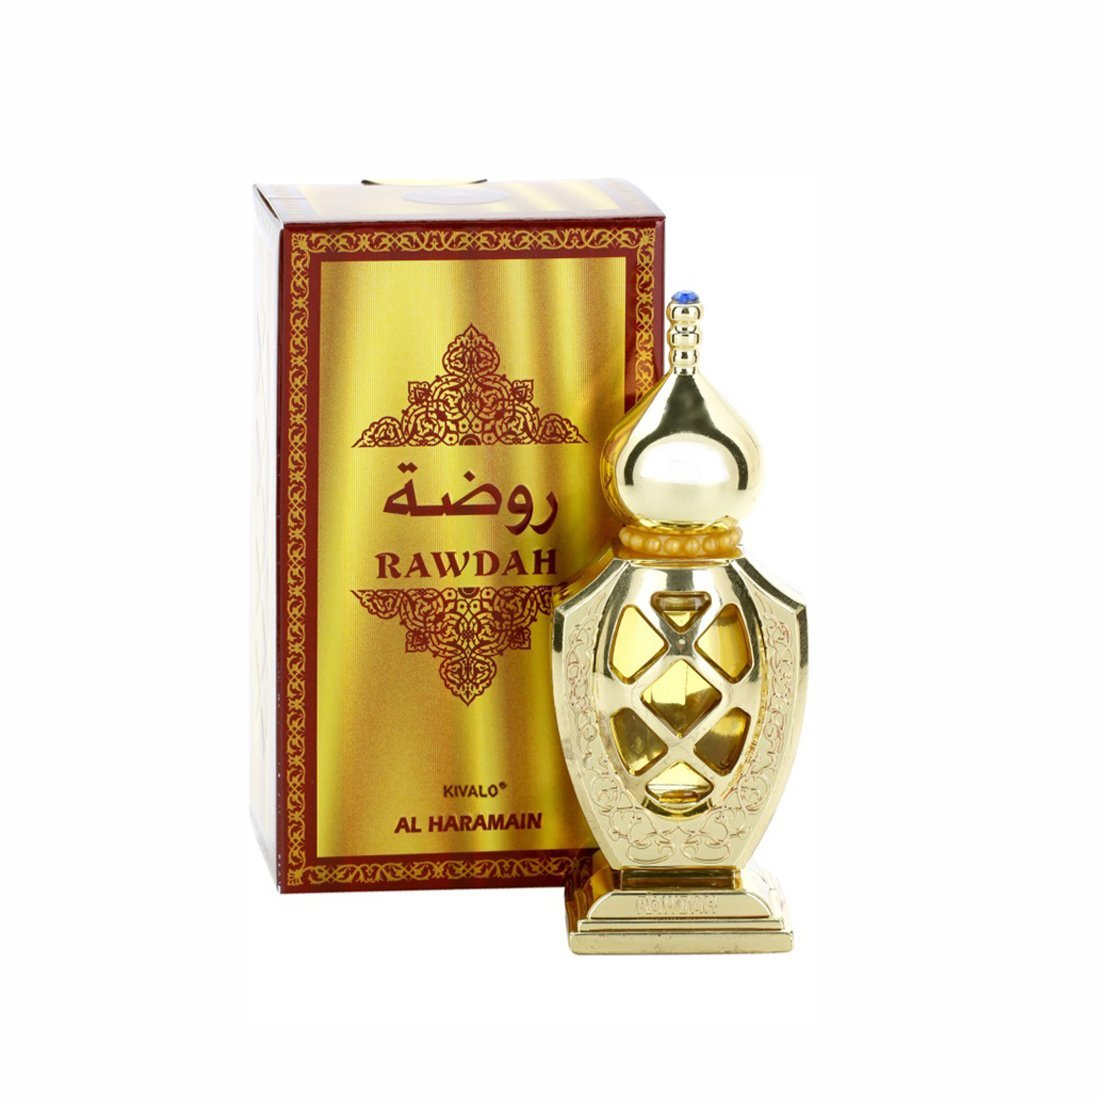 Al Haramain Rawdah Attar 15 ml